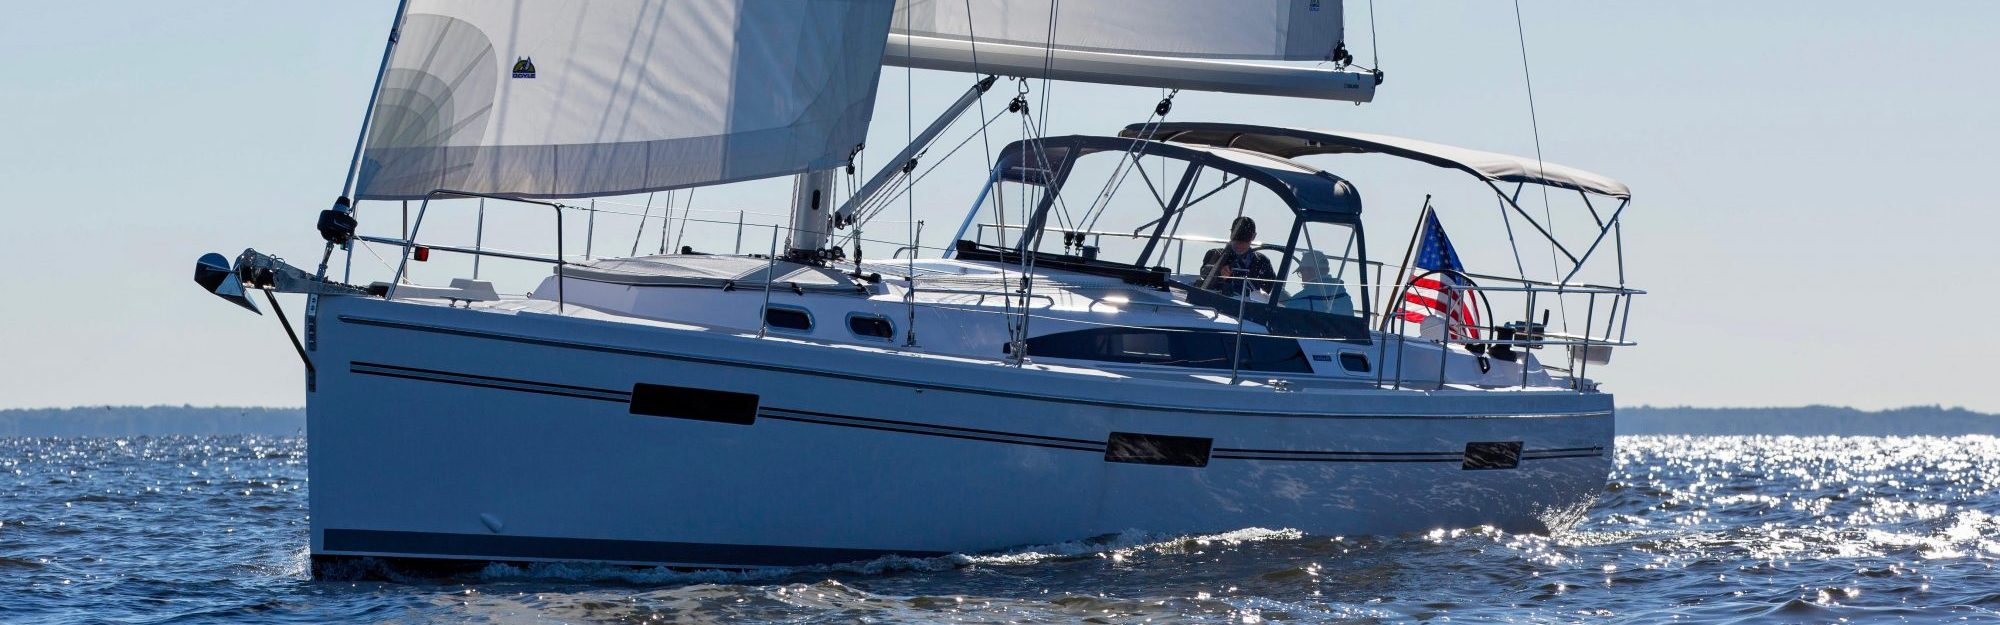 Catalina 425 at the Annapolis Sailboat Show, Annapolis MD